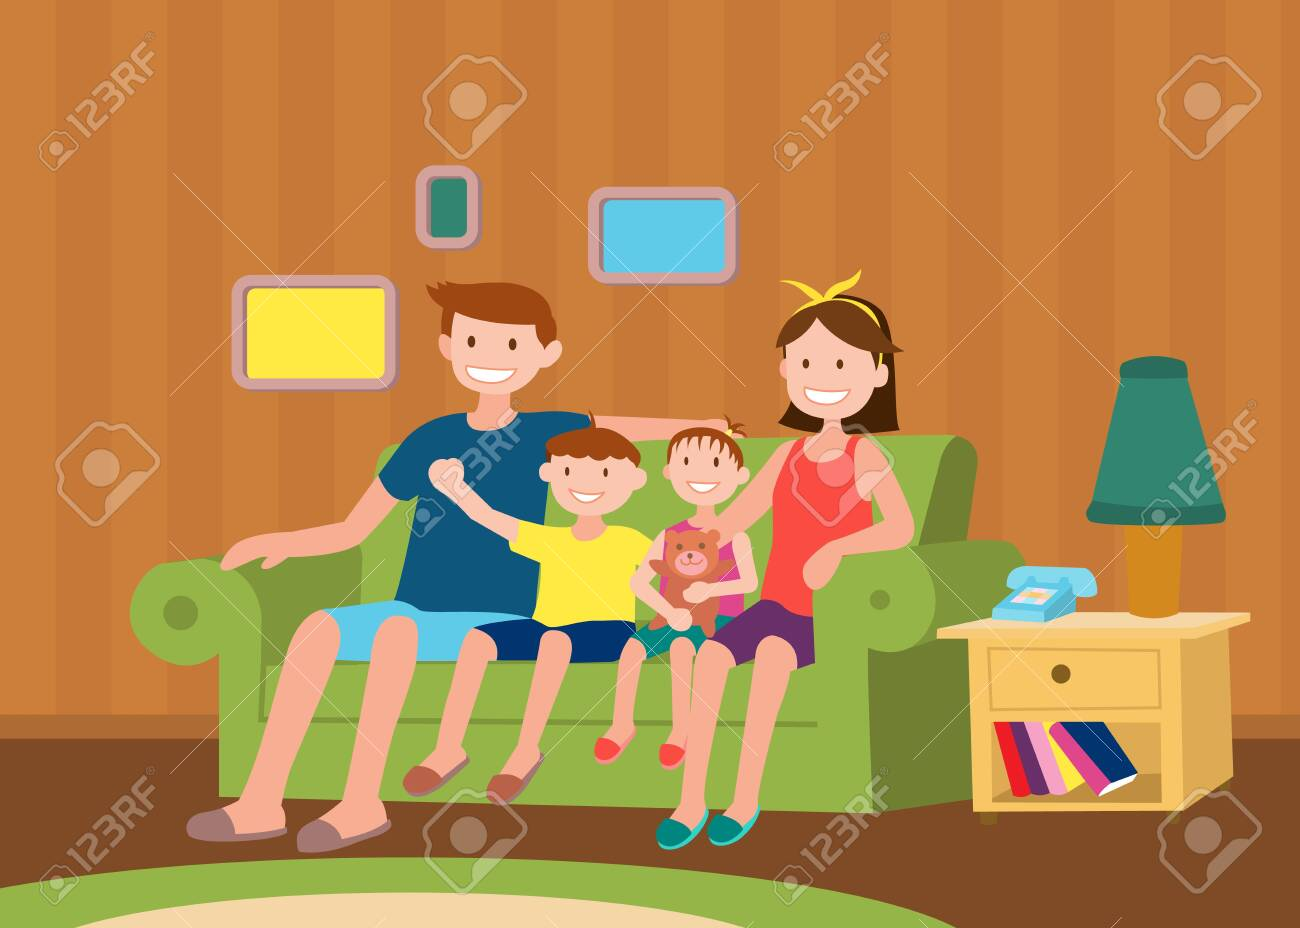 Family Sitting Together - 121759354